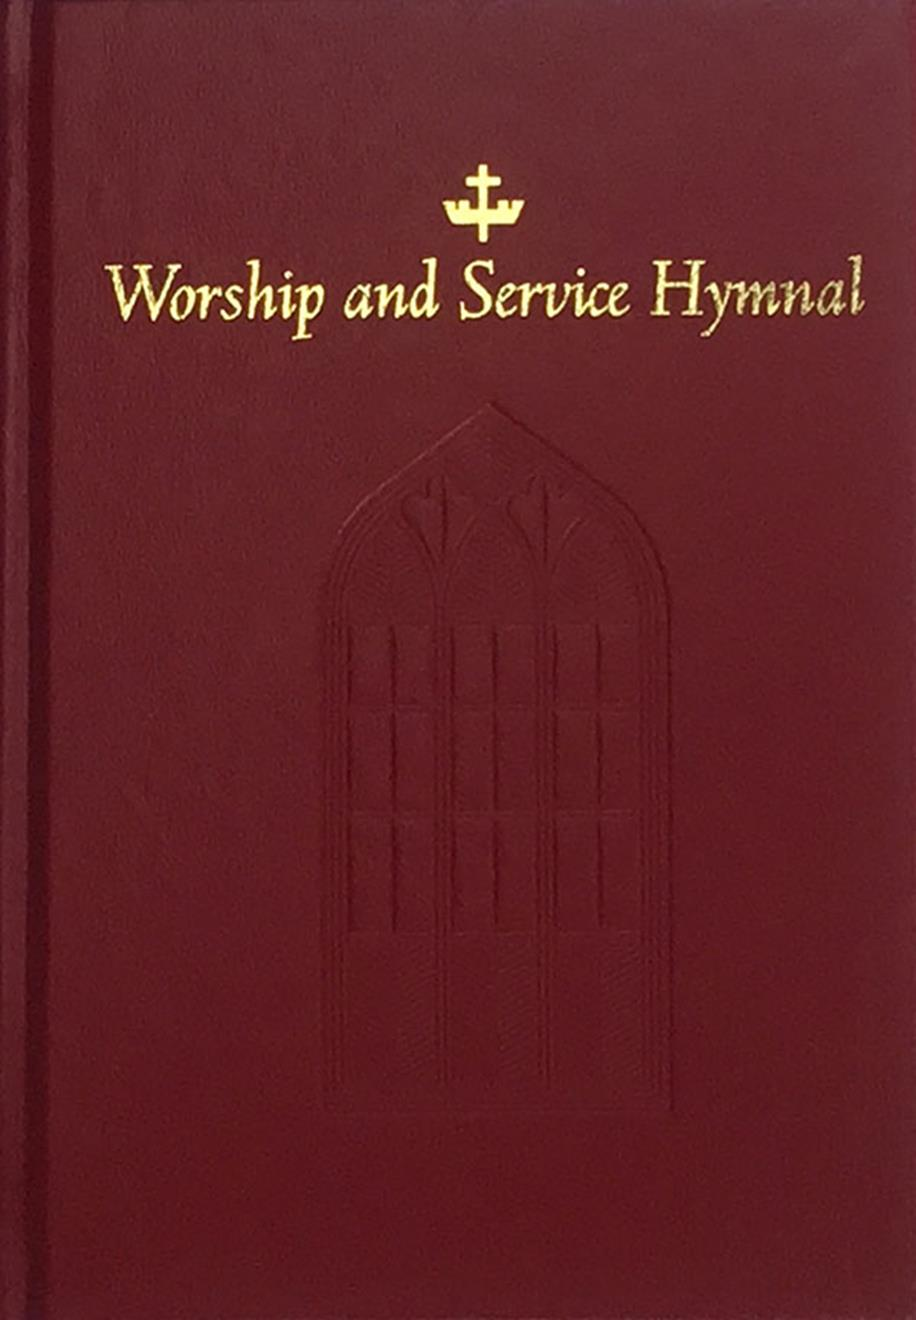 Worship and Service Hymnal - Red Cover Image